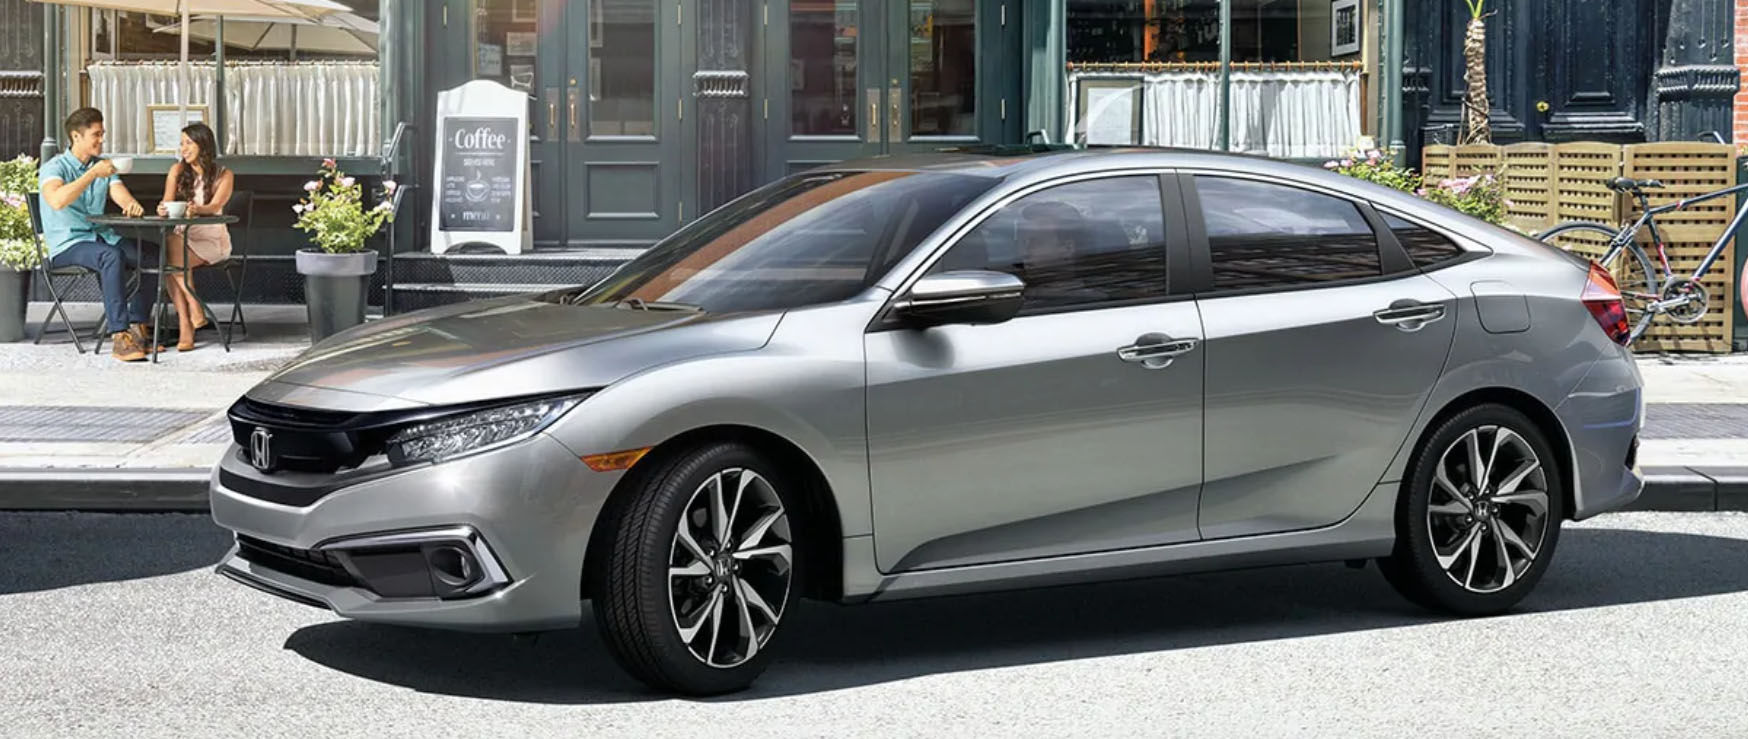 2020 Honda Civic Sedan For Sale in Huntington